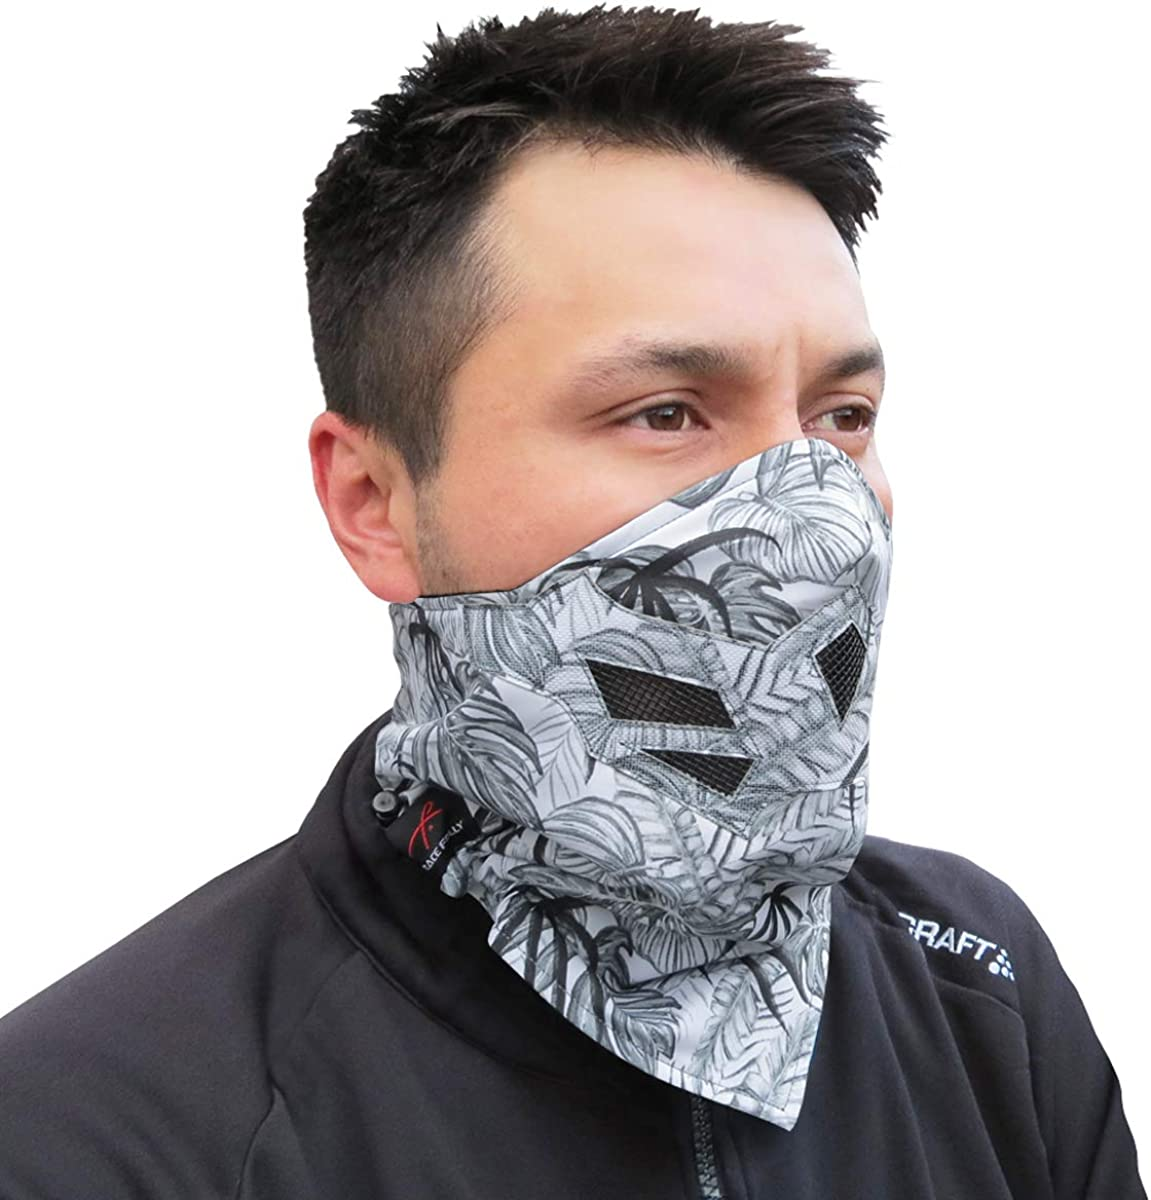 Motorcycle. Use This Half Balaclava for Snowboarding LESOVI Half Face Mask for Cold Winter Weather Ski